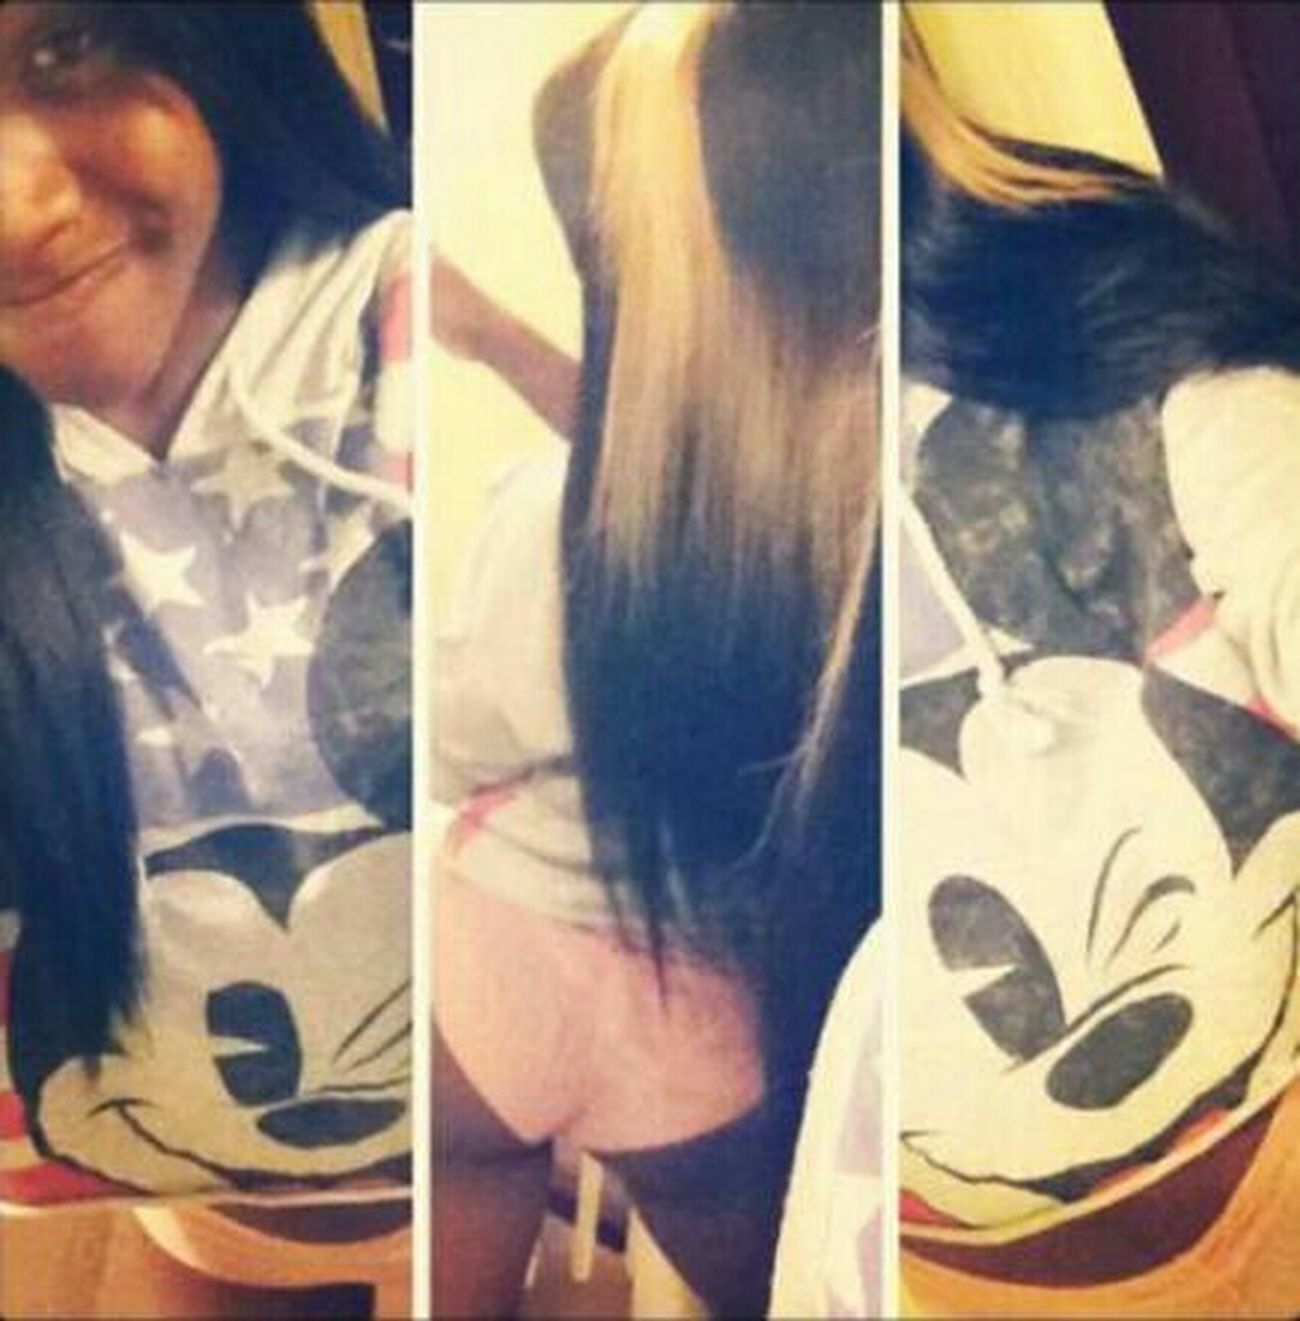 imiss my blonde hair & Mickey mouse Hoodie :(